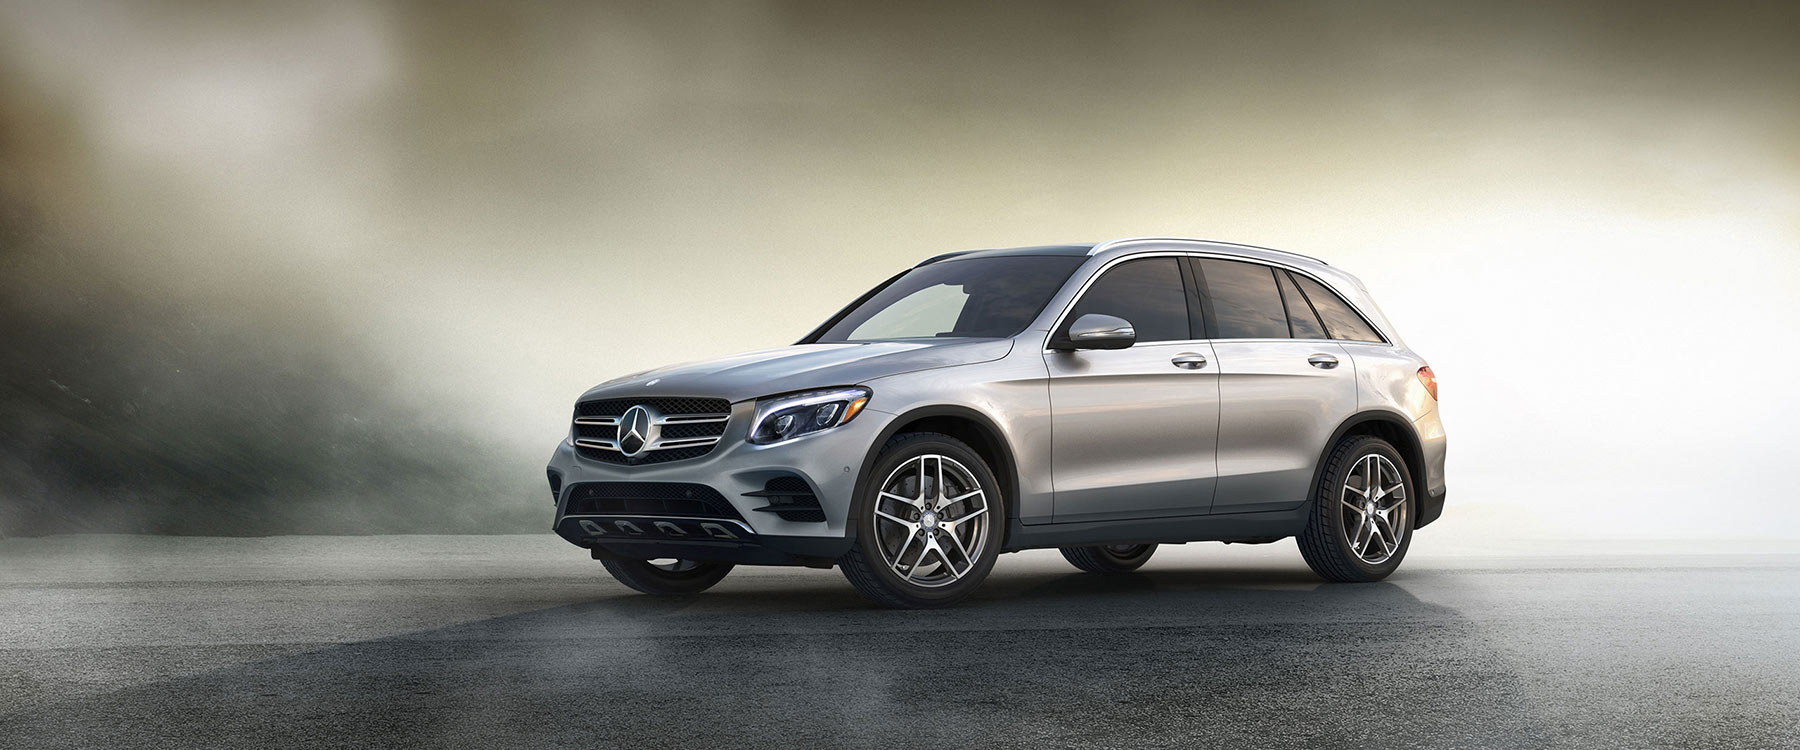 The elegant and strong 2018 mercedes benz glc 300 suv for Mercedes benz glc